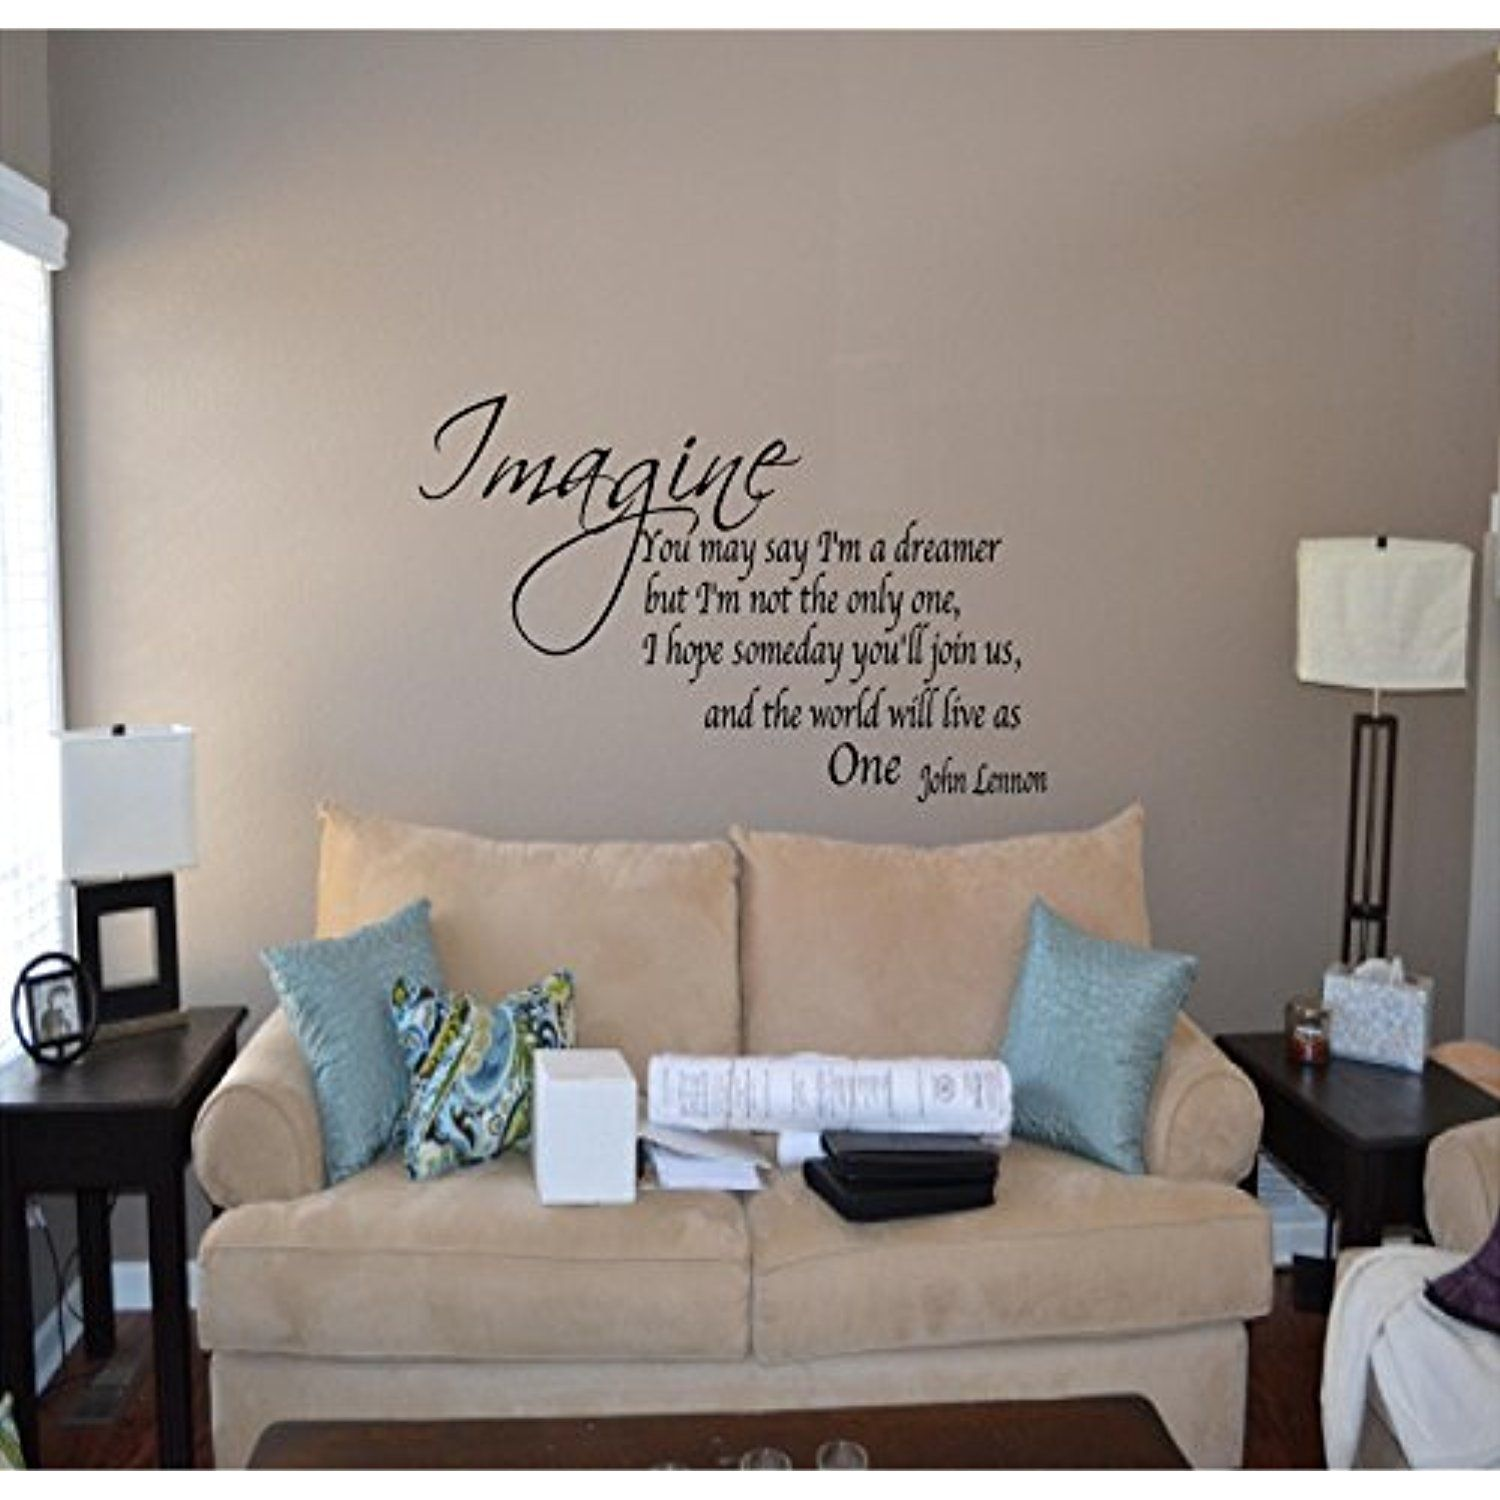 Quote It Imagine Removable Vinyl Wall Quotes John Lennon Wall Quotes Inspirational Quot Living Room Wall Decor Quotes Vinyl Wall Quotes Living Room Quotes #wall #decals #quotes #living #room